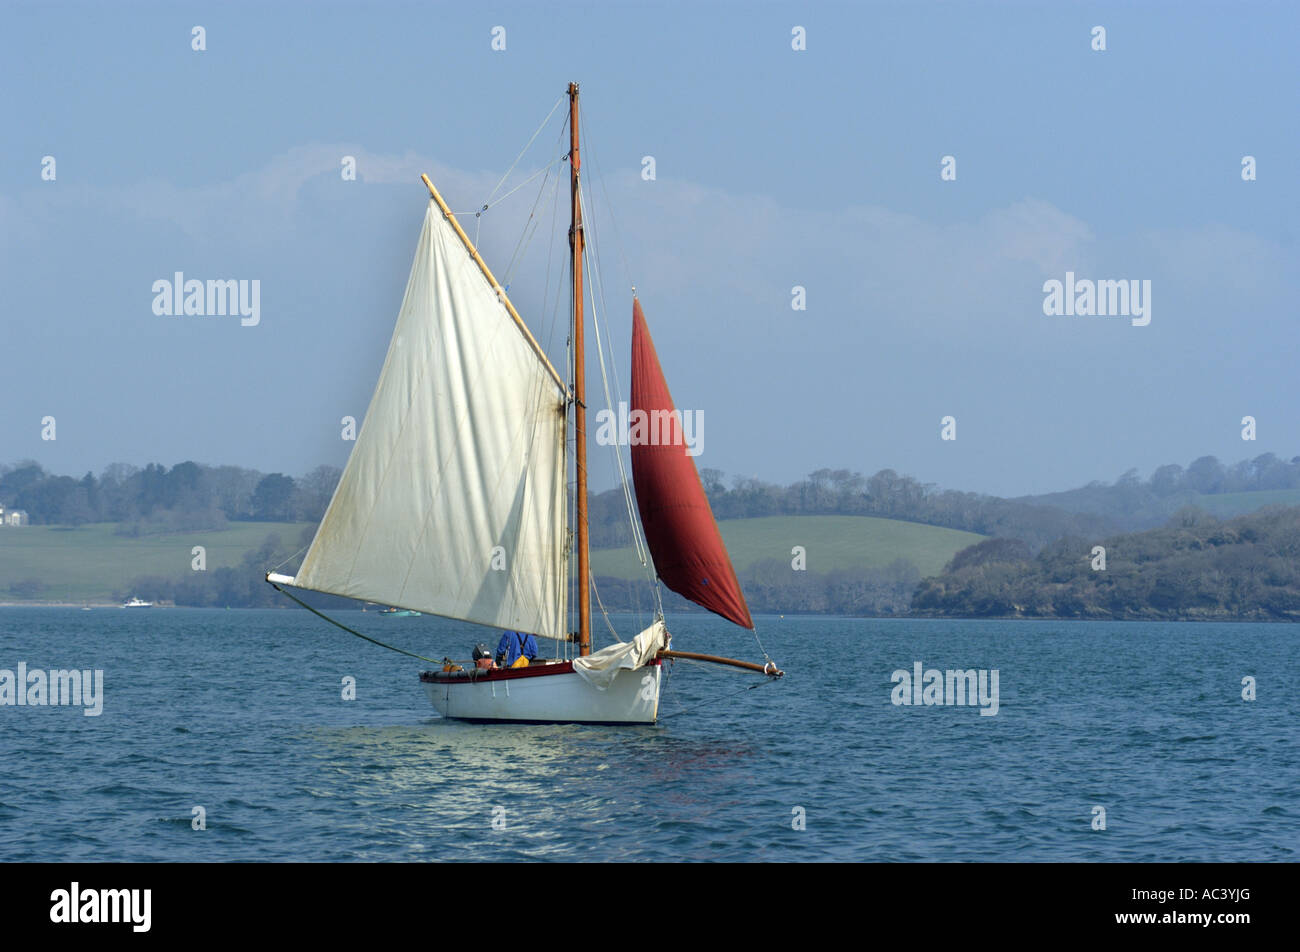 A traditional oyster dredger sailing boat at work in Carrick Roads in the Fal estuary Cornwall England Stock Photo